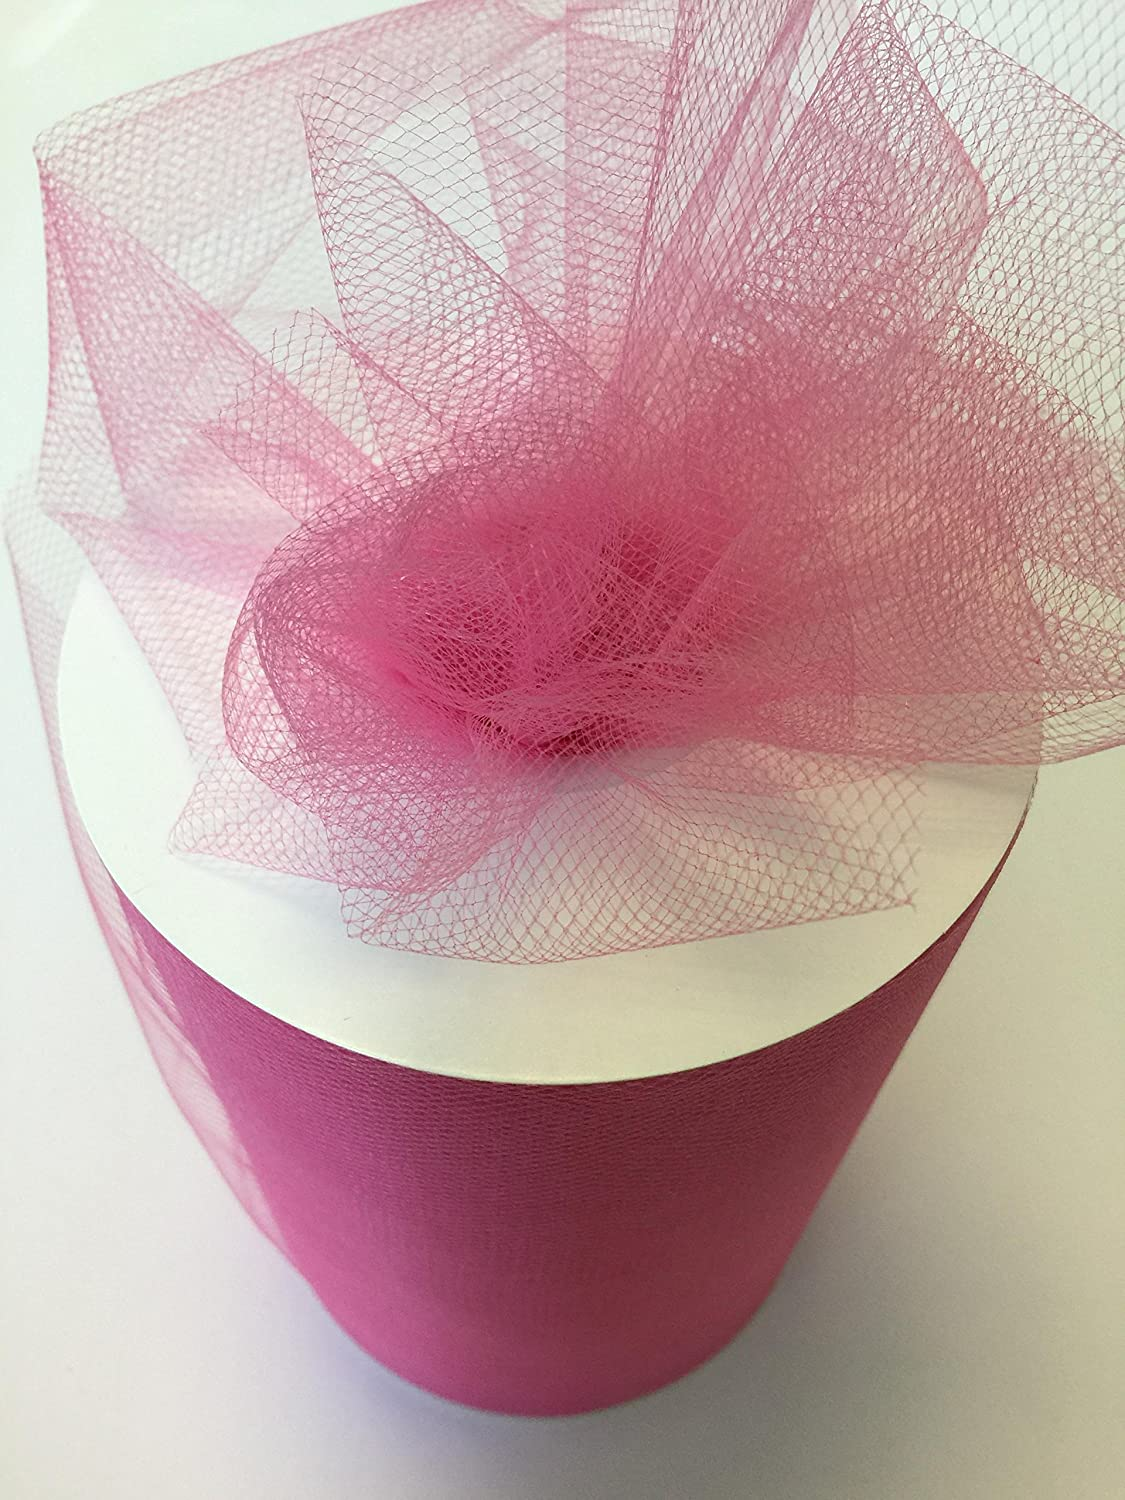 Tulle Fabric Spool/Roll 6 inch x 100 yards (300 feet), 34 Colors Available, On Sale Now! (shocking pink)